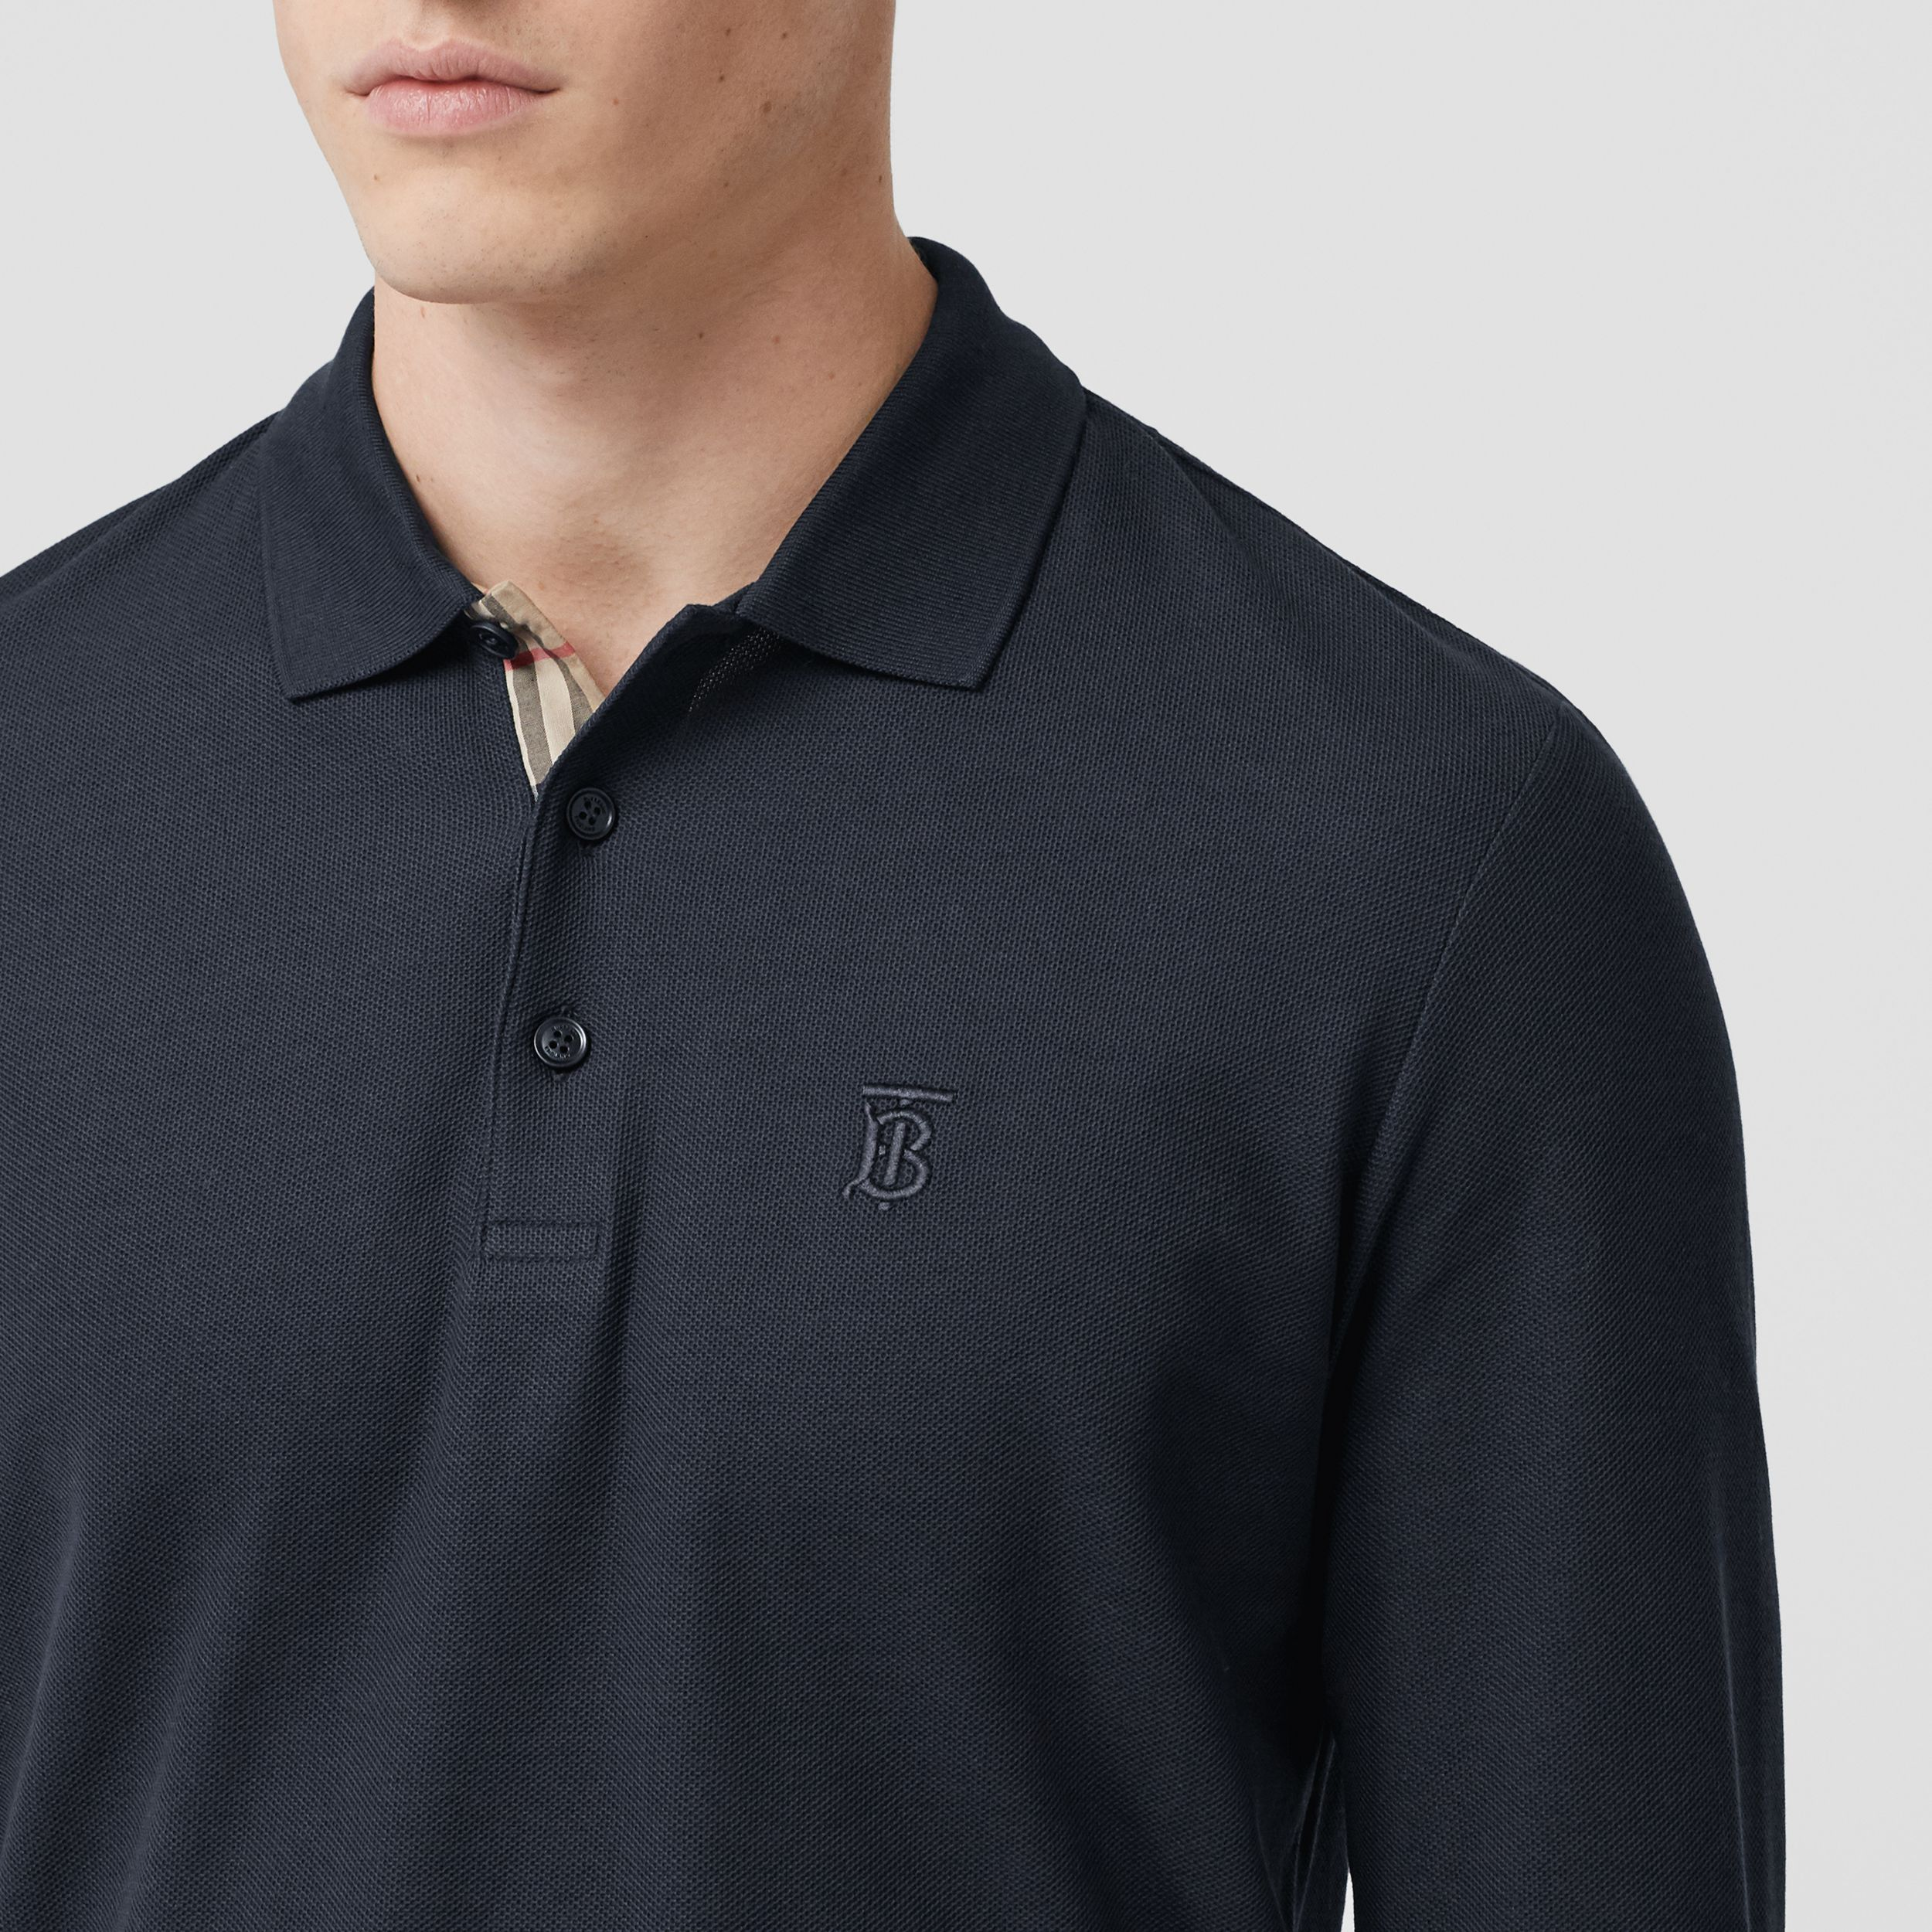 Long-sleeve Monogram Motif Cotton Piqué Polo Shirt in Navy - Men | Burberry - 2